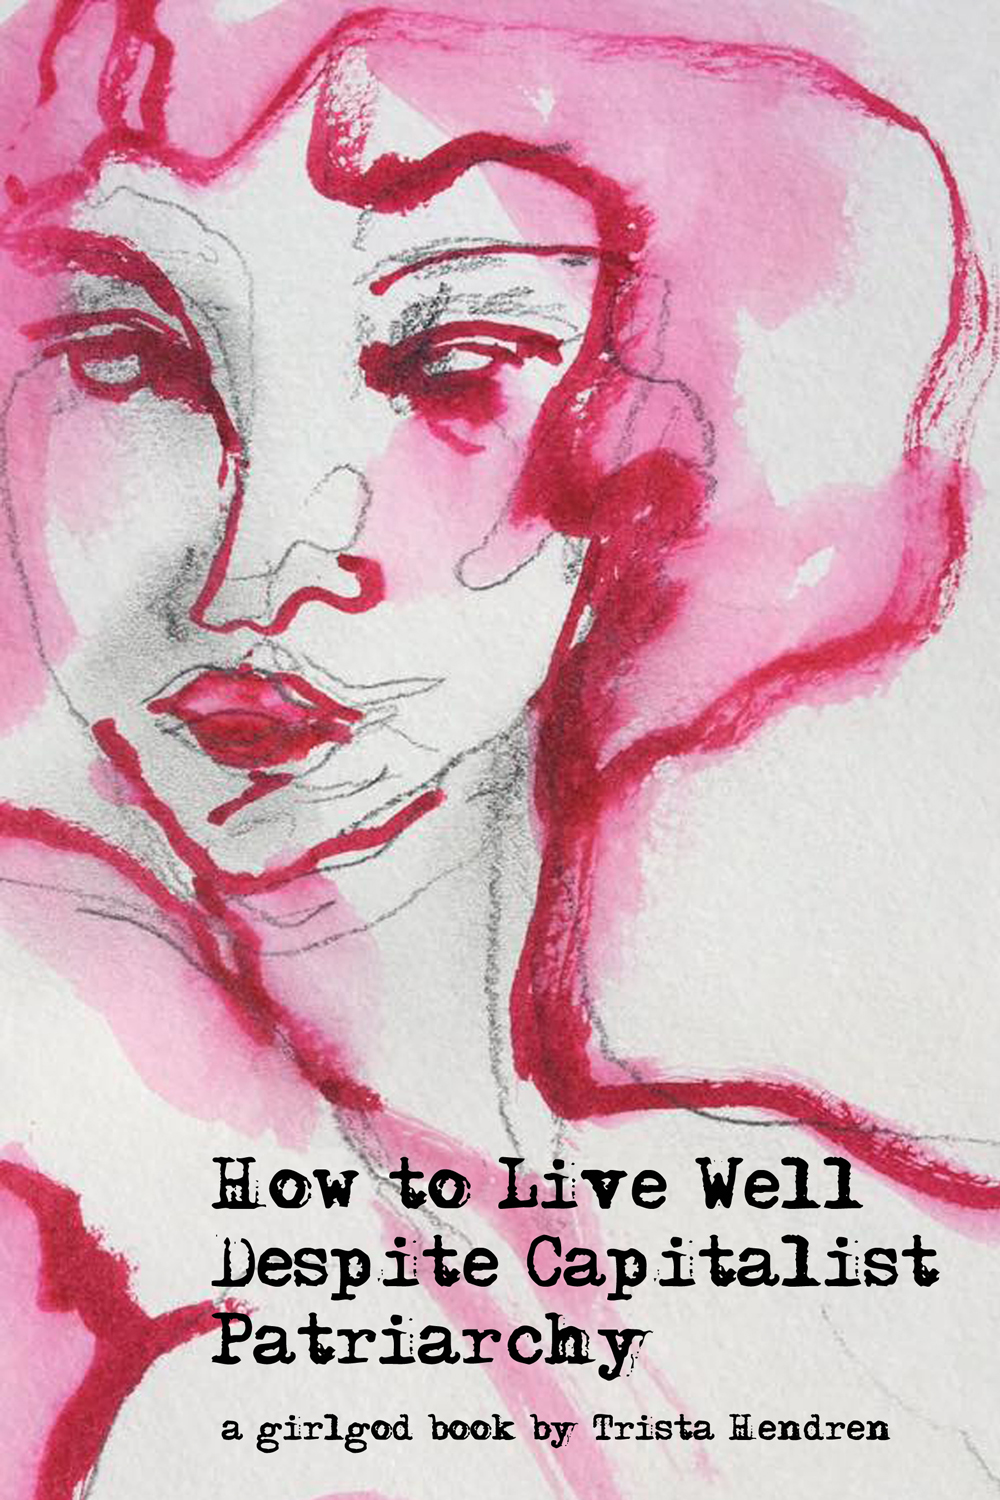 How to Live Well Despite Capitalist Patriarchy